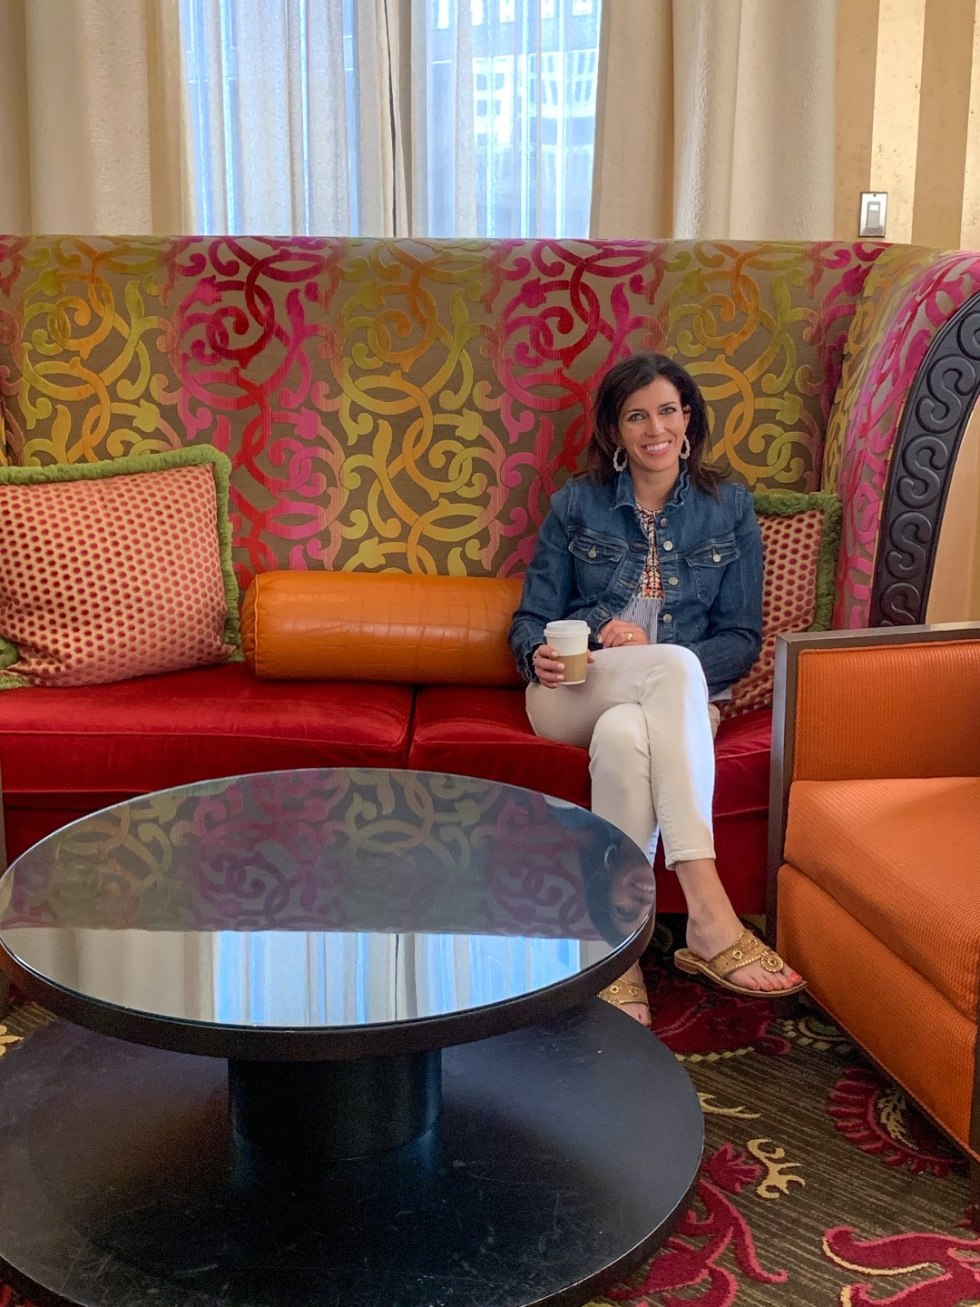 Kimpton Monaco Baltimore Review: the Perfect Hotel in the Inner Harbor - I'm Fixin' To - @mbg0112